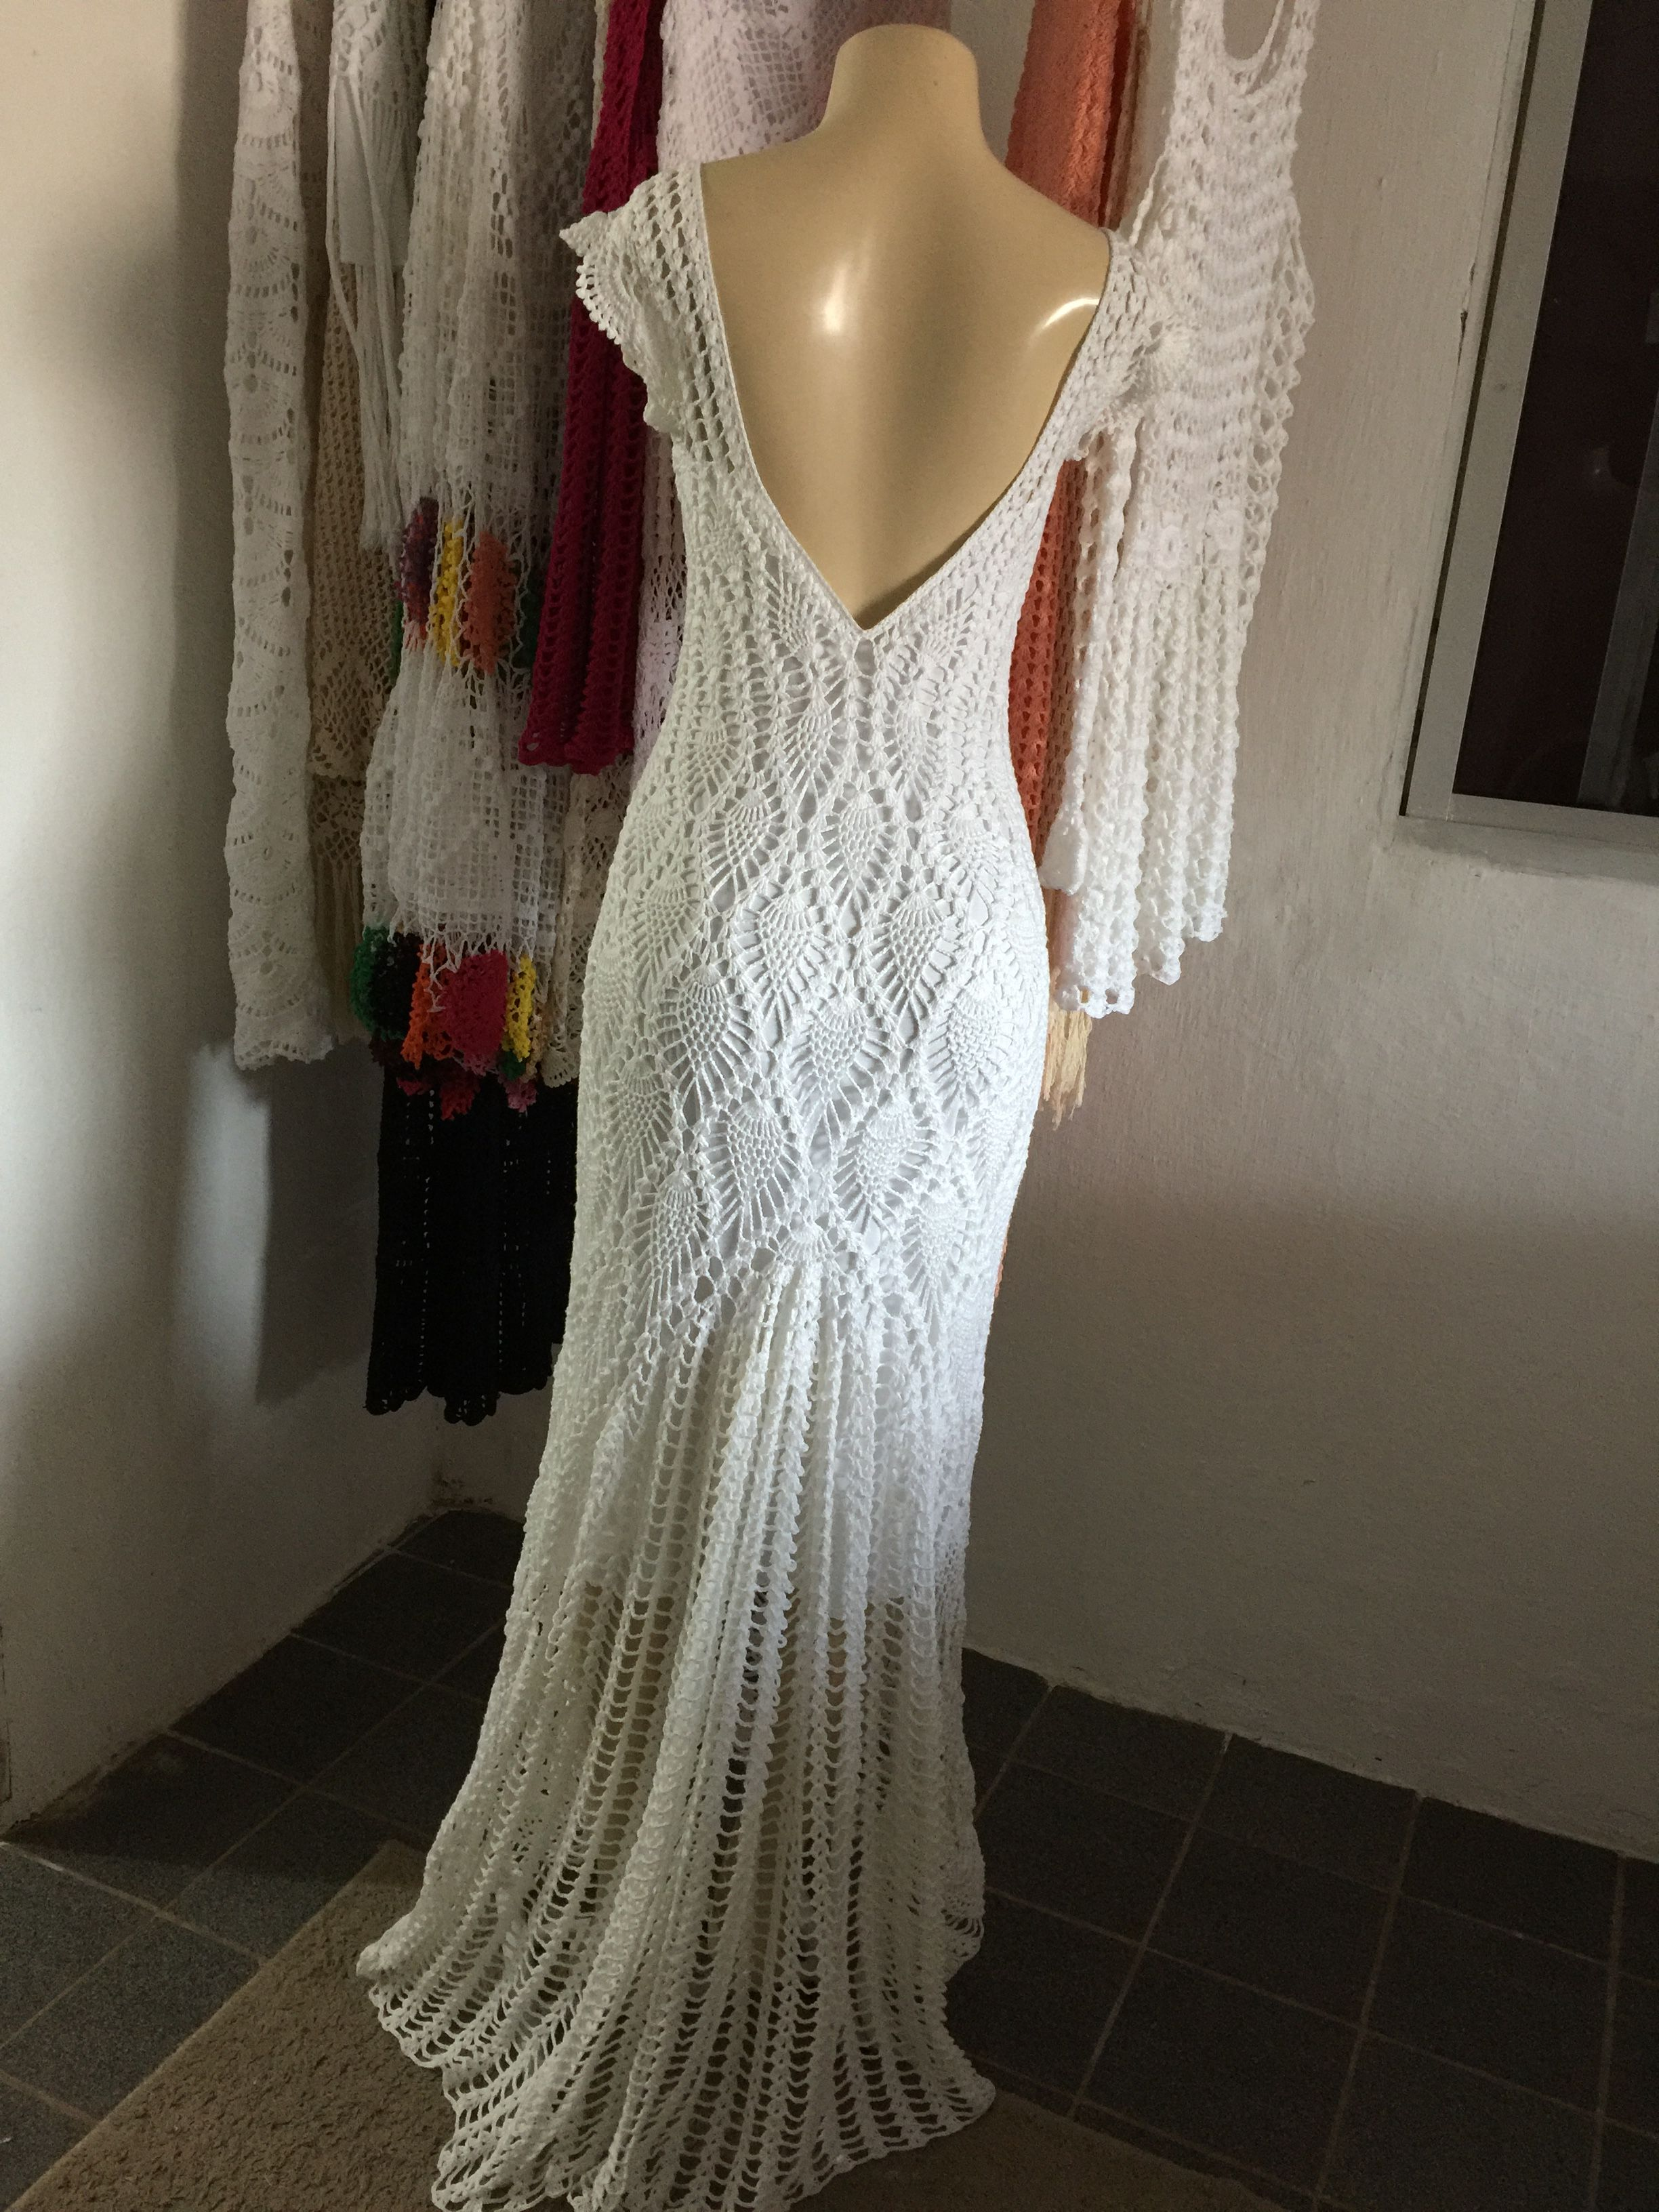 Pin von Pacharee Yamwithaya auf Crochet Dress | Pinterest ...